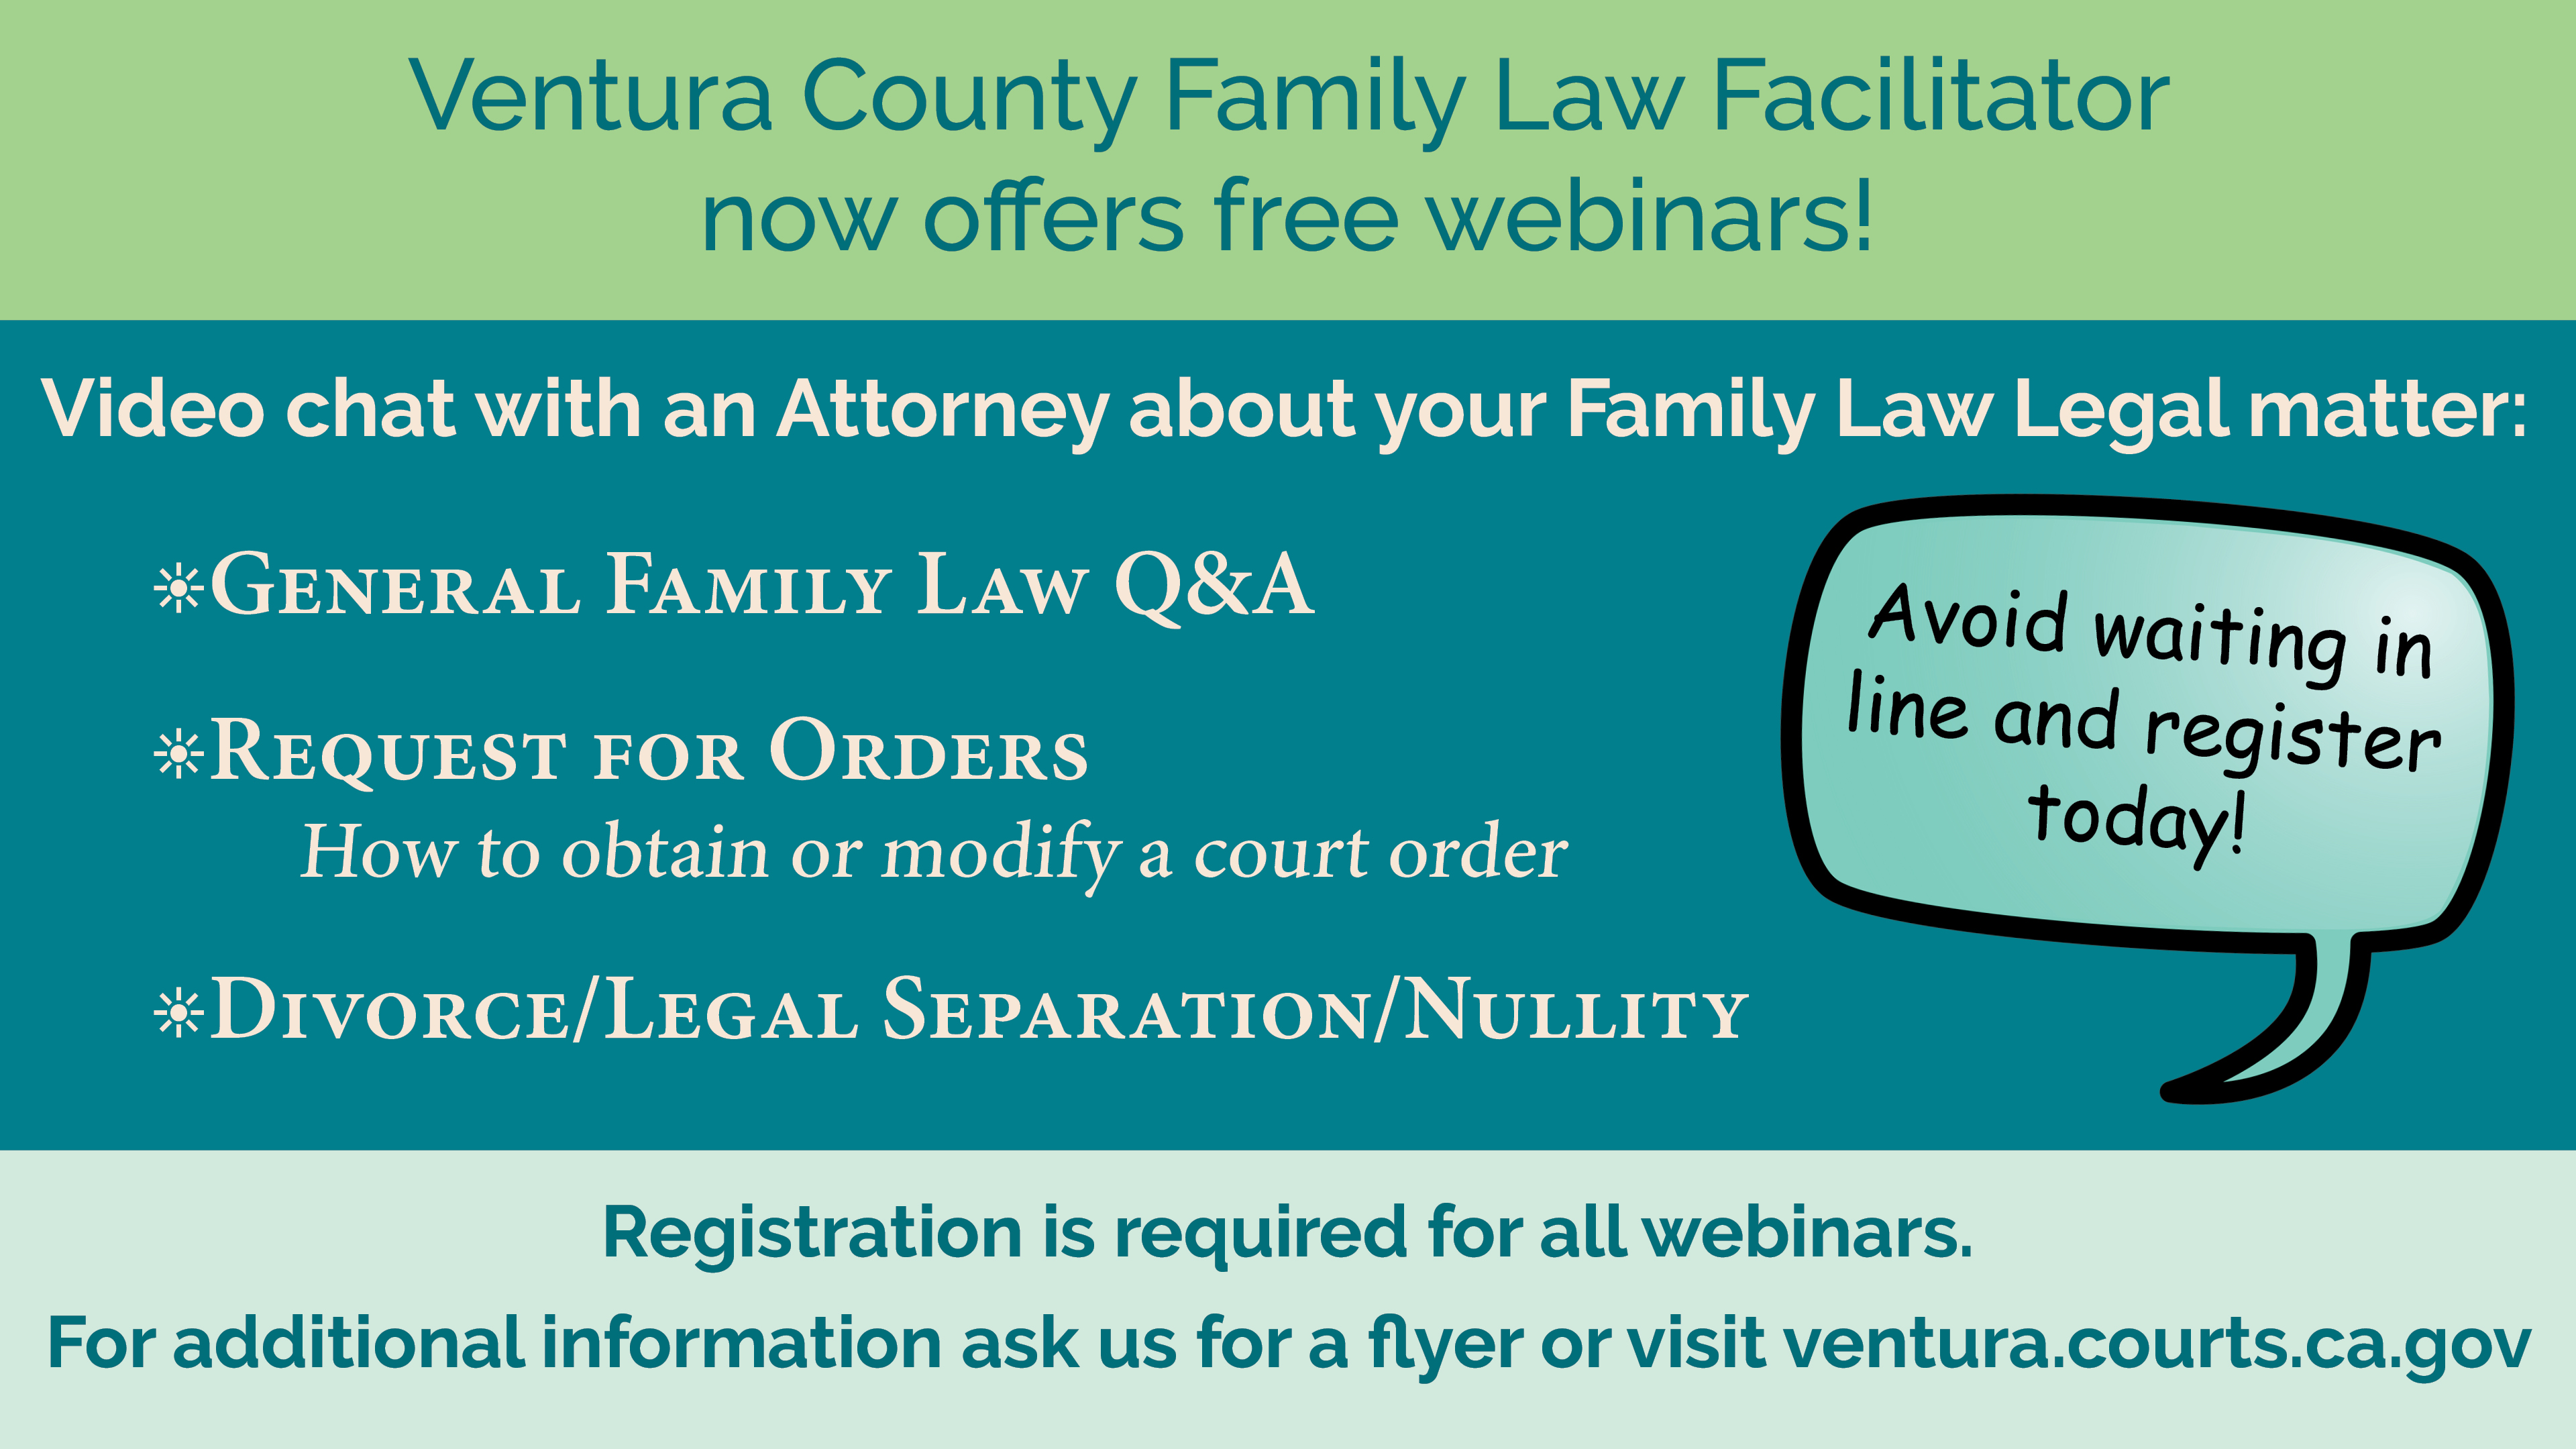 Child Support Services - Ventura County